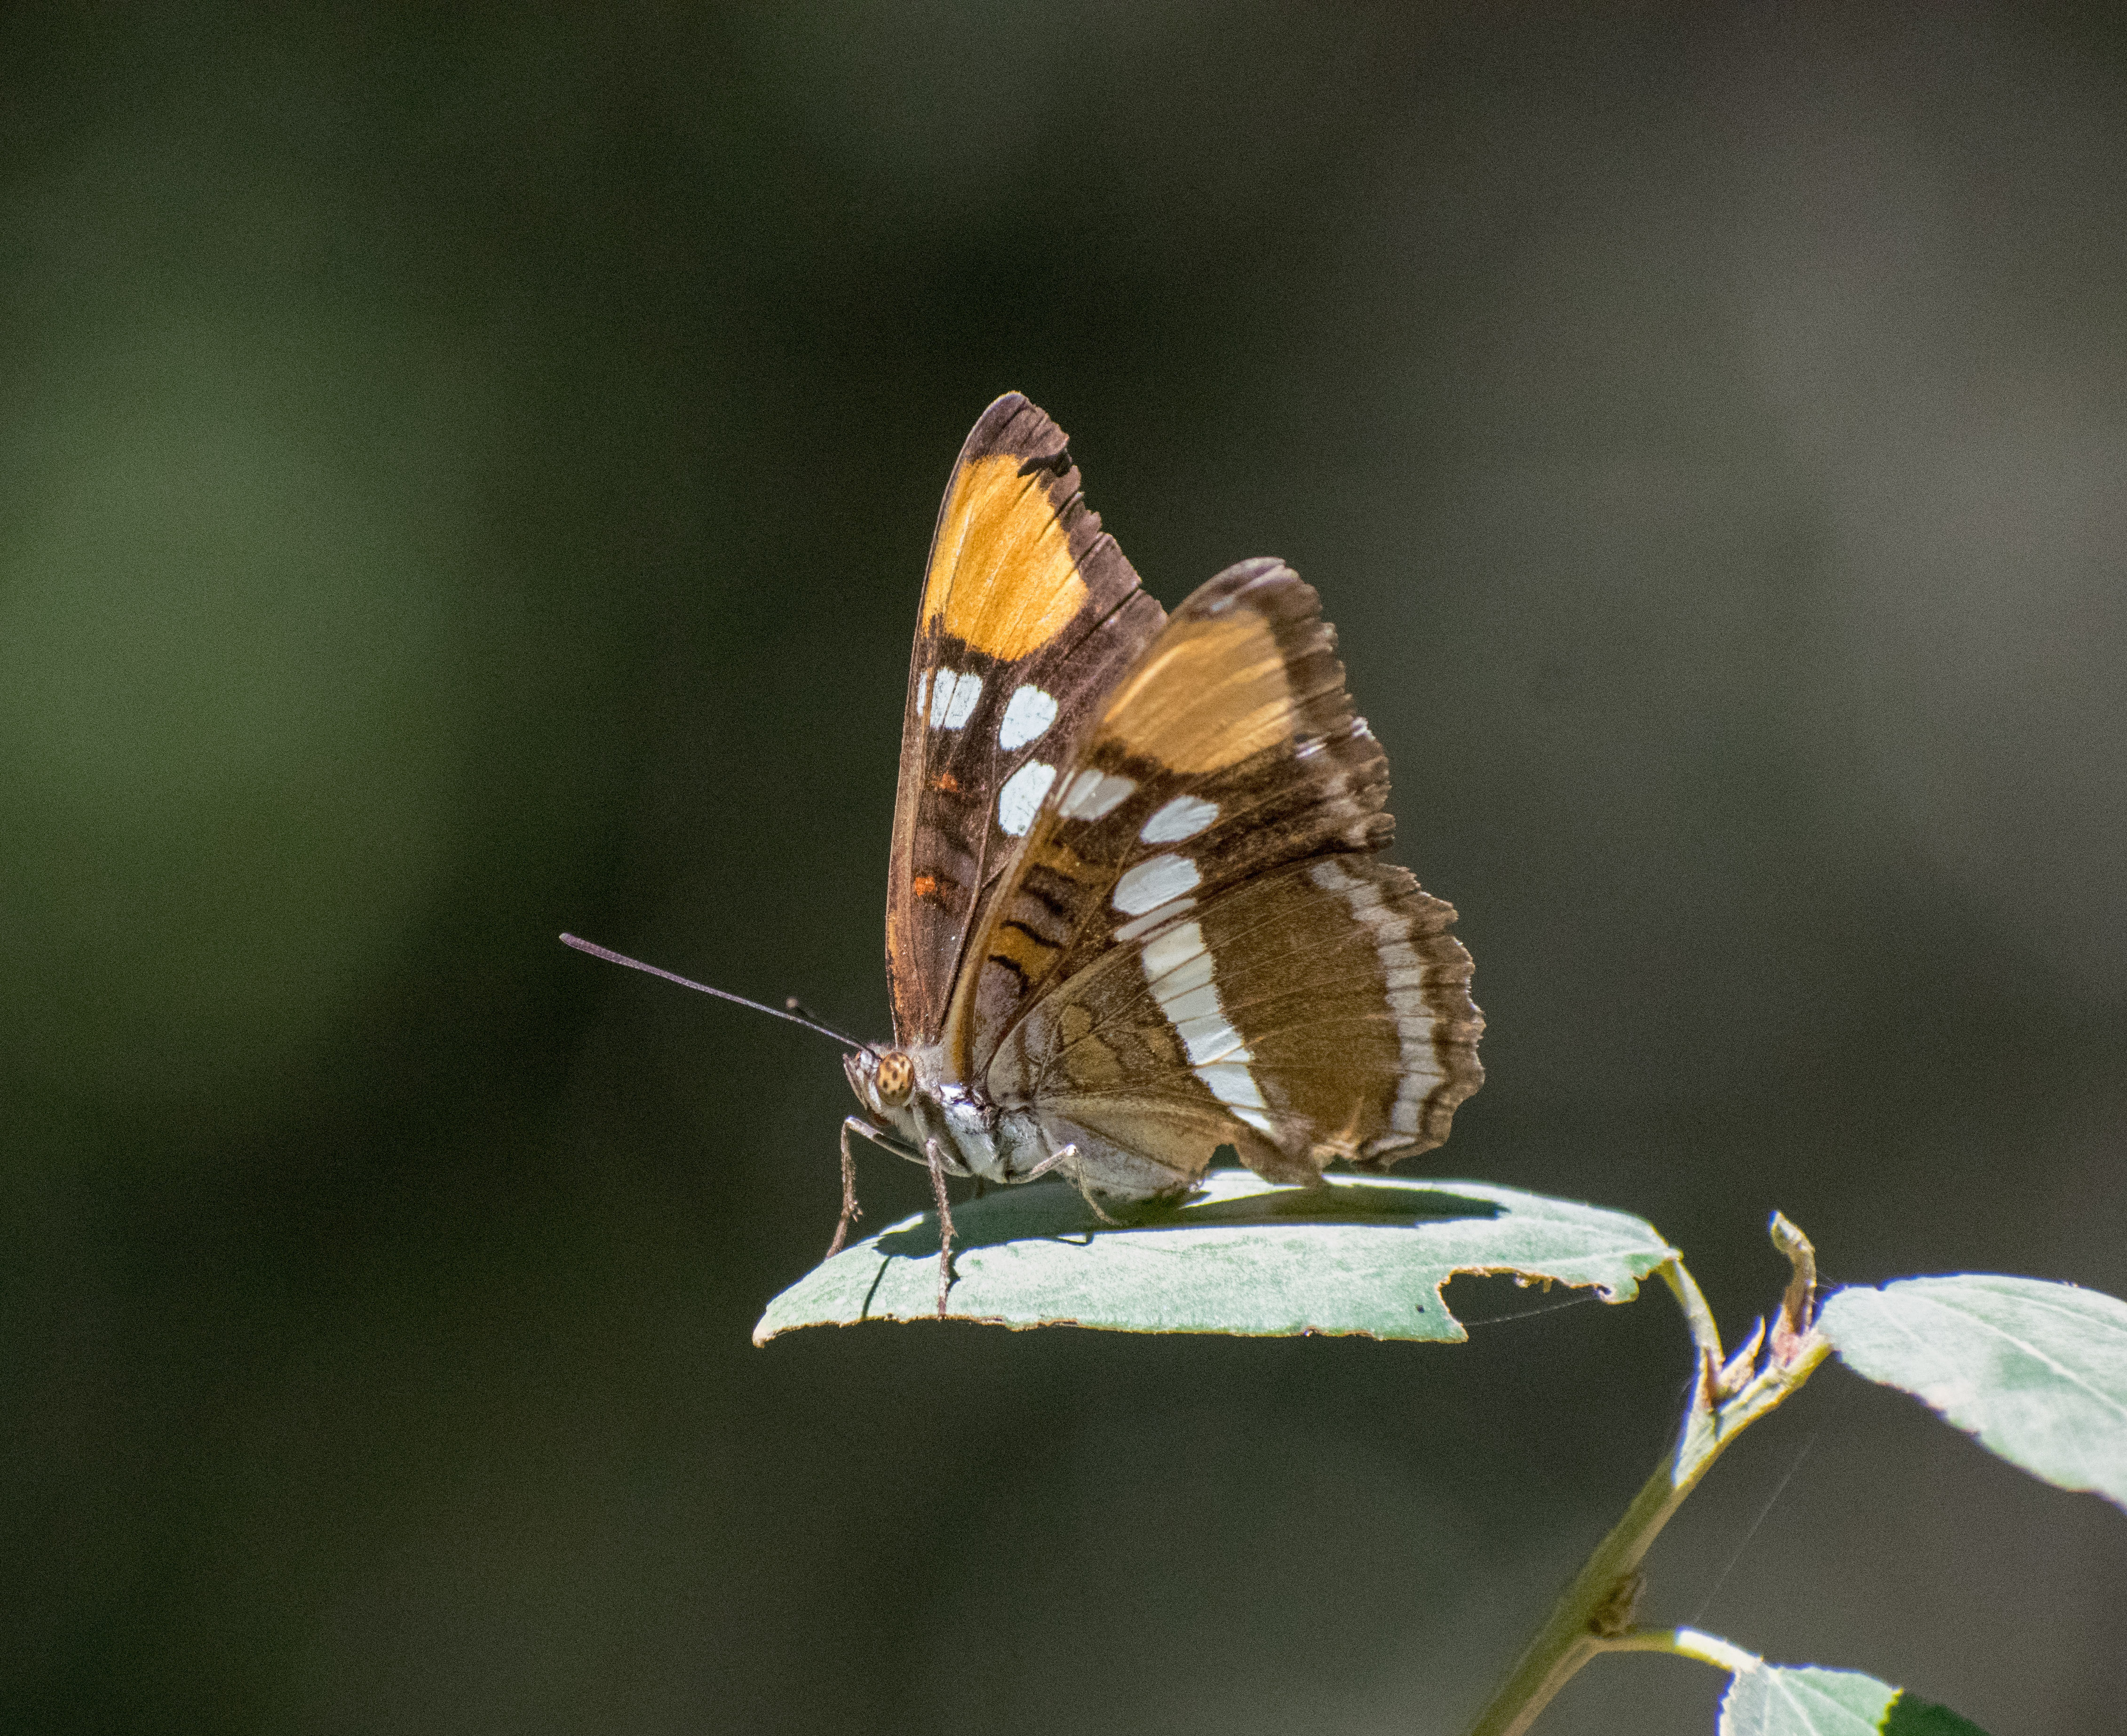 Close up photo of a the Mormon metalmark butterfly